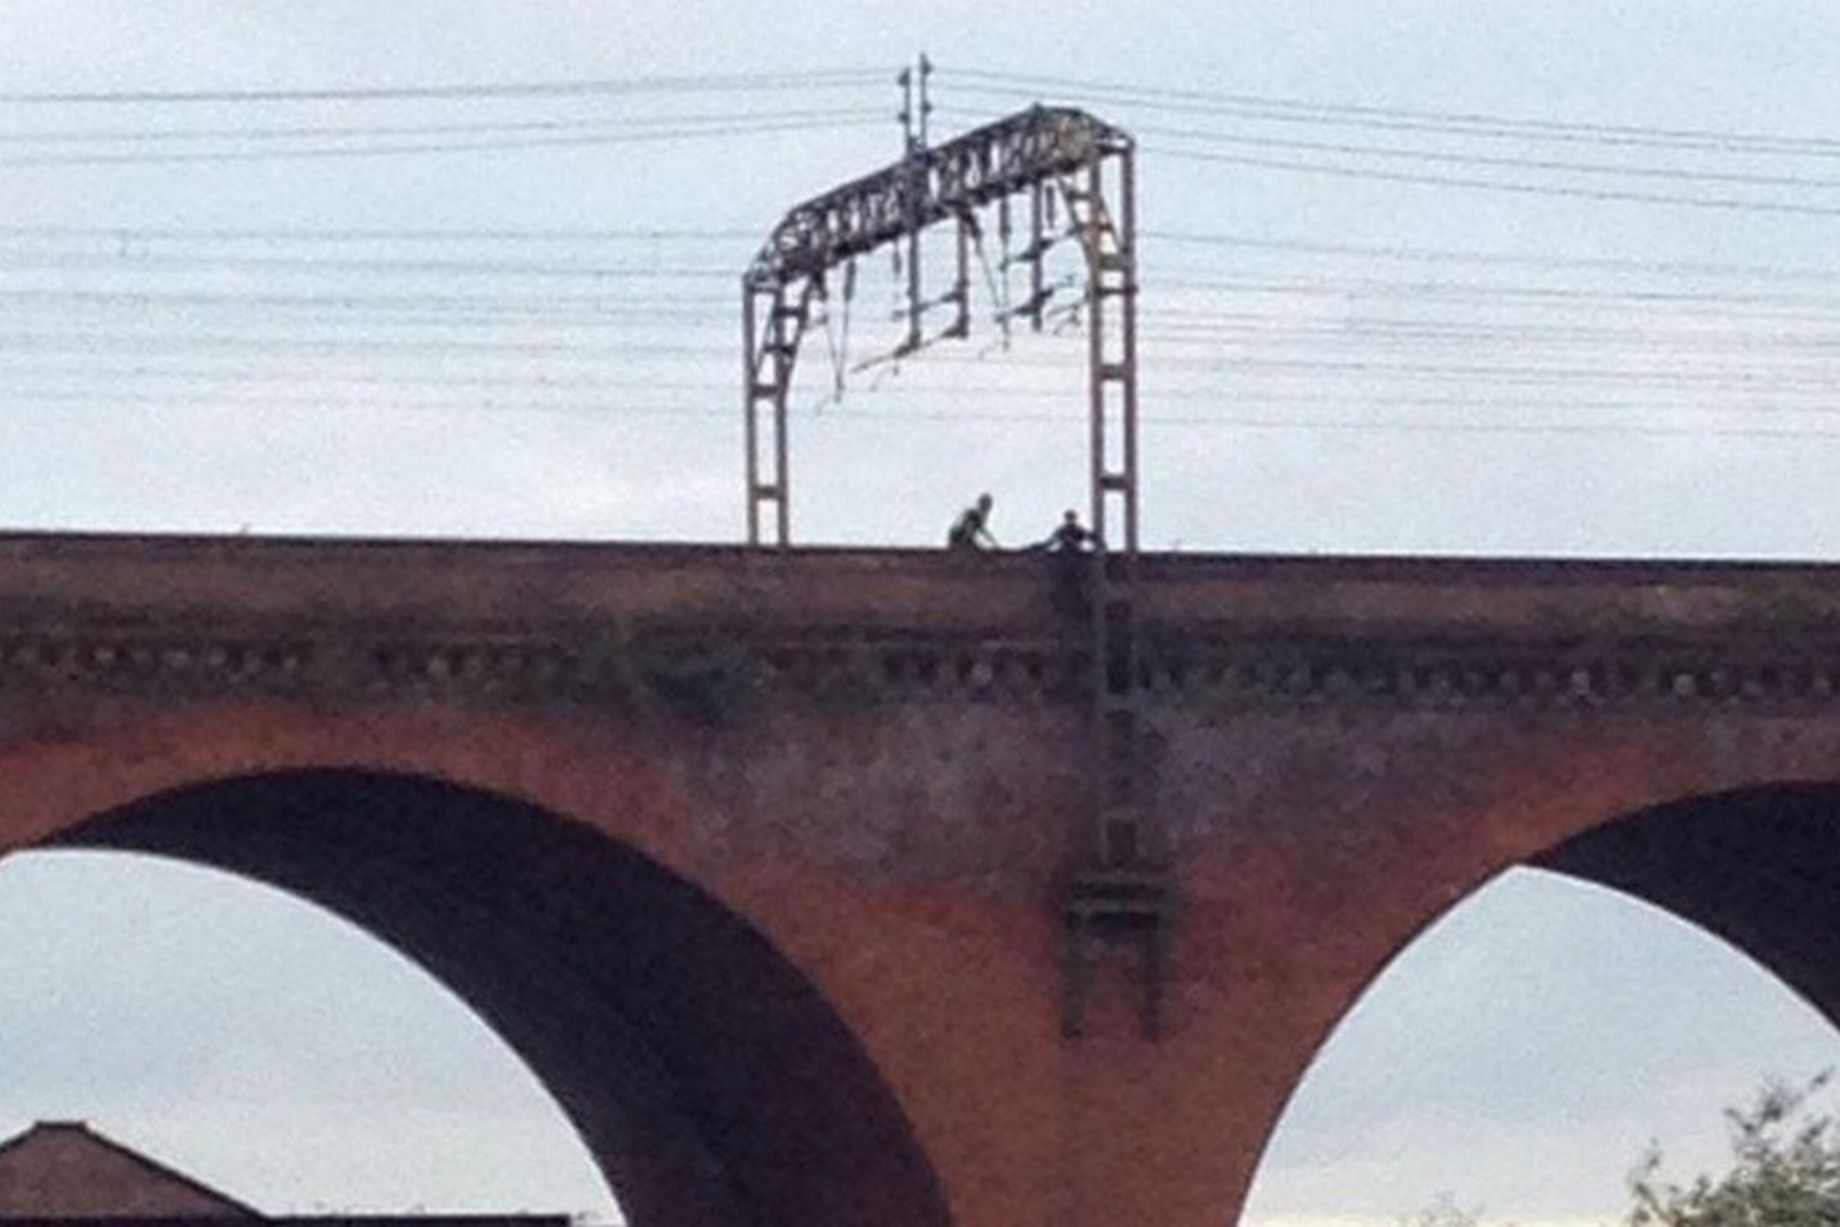 Trains-halted-through-Stockport-after-woman-seen-on-viaduct 1